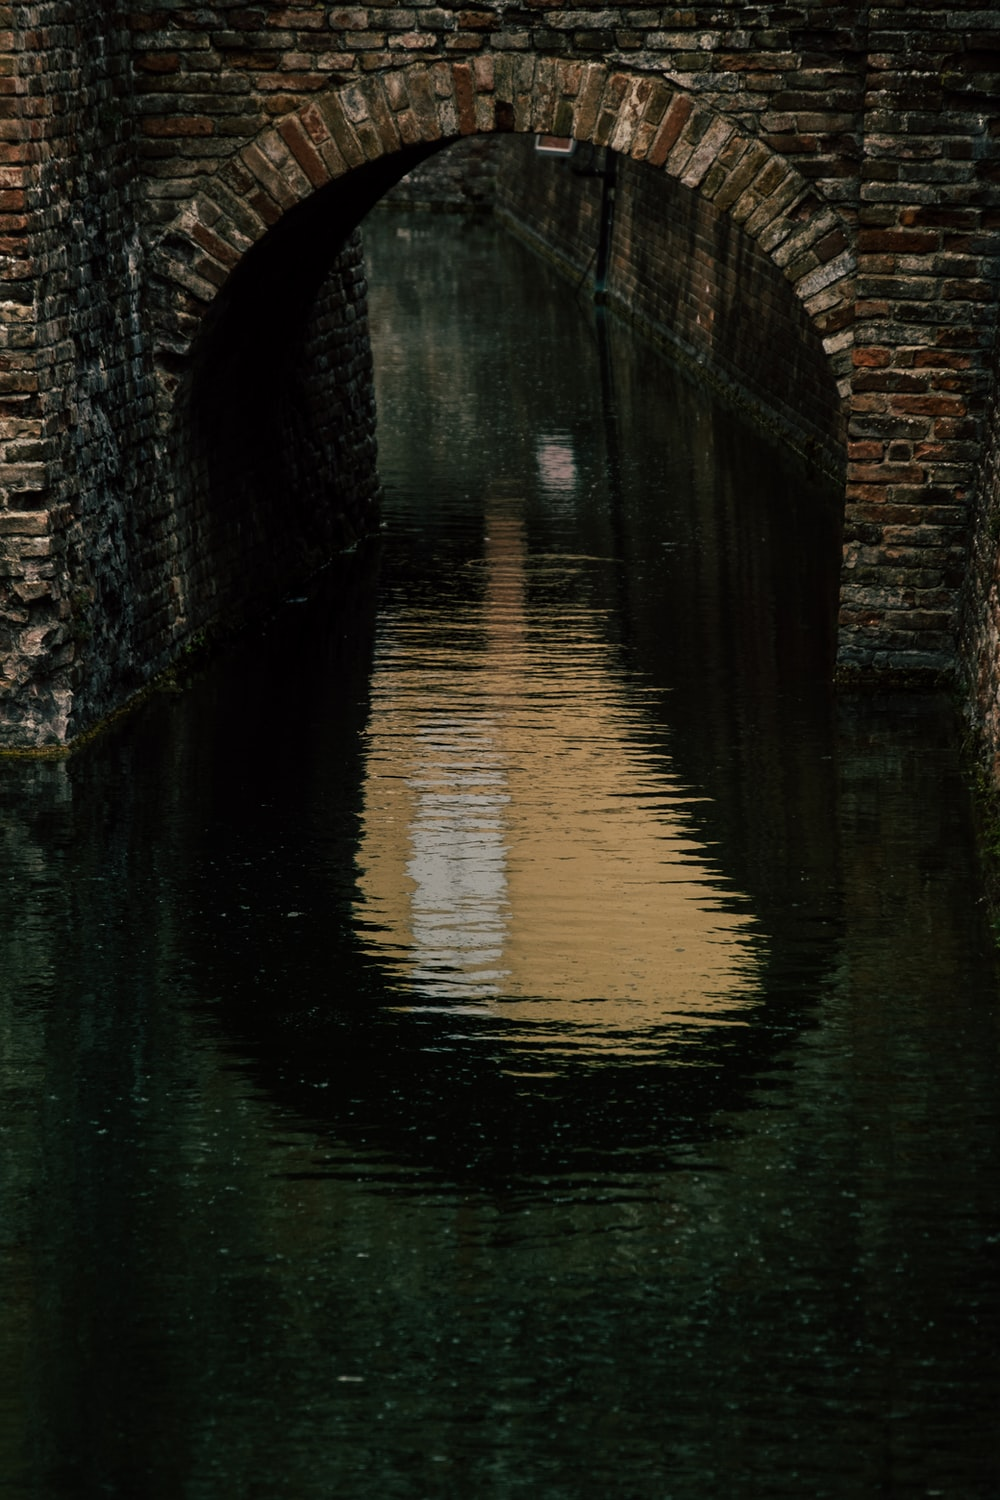 reflection of gray concrete bridge on water during daytime